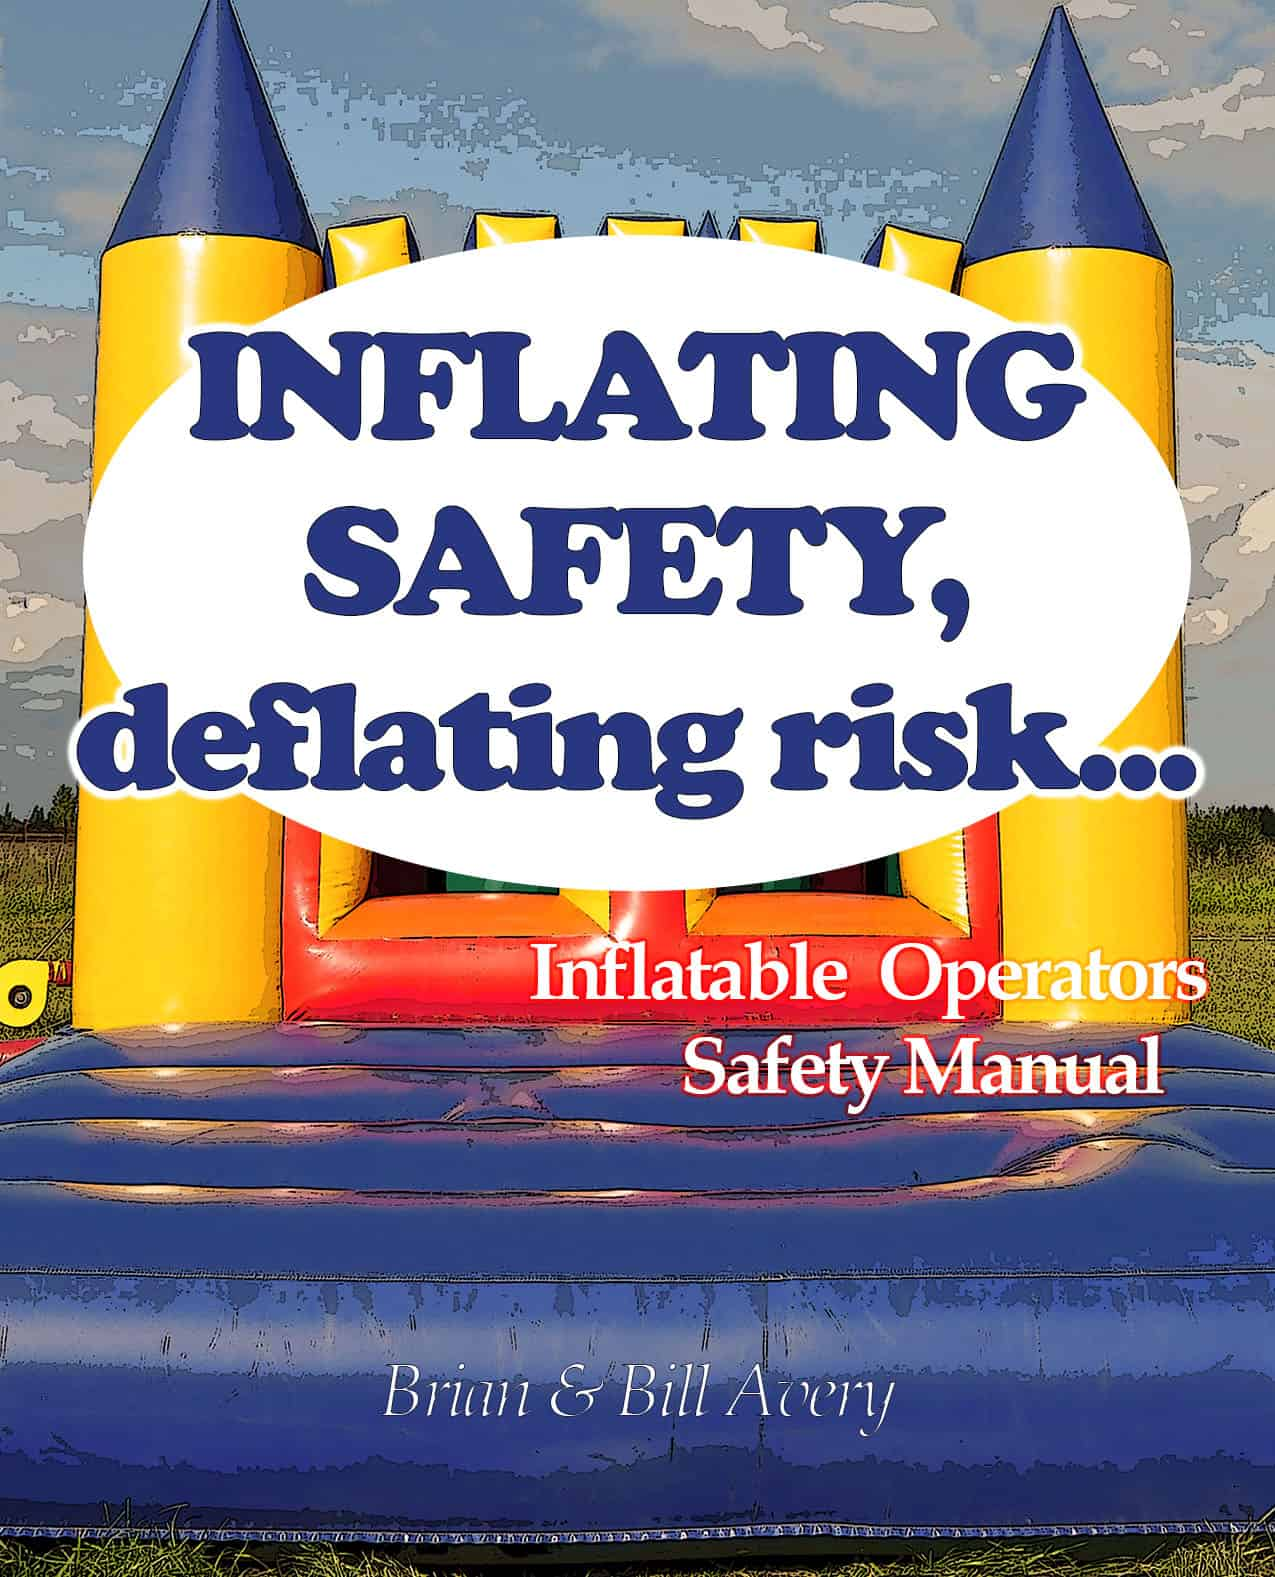 INFLATING SAFETY, DEFLATING RISK